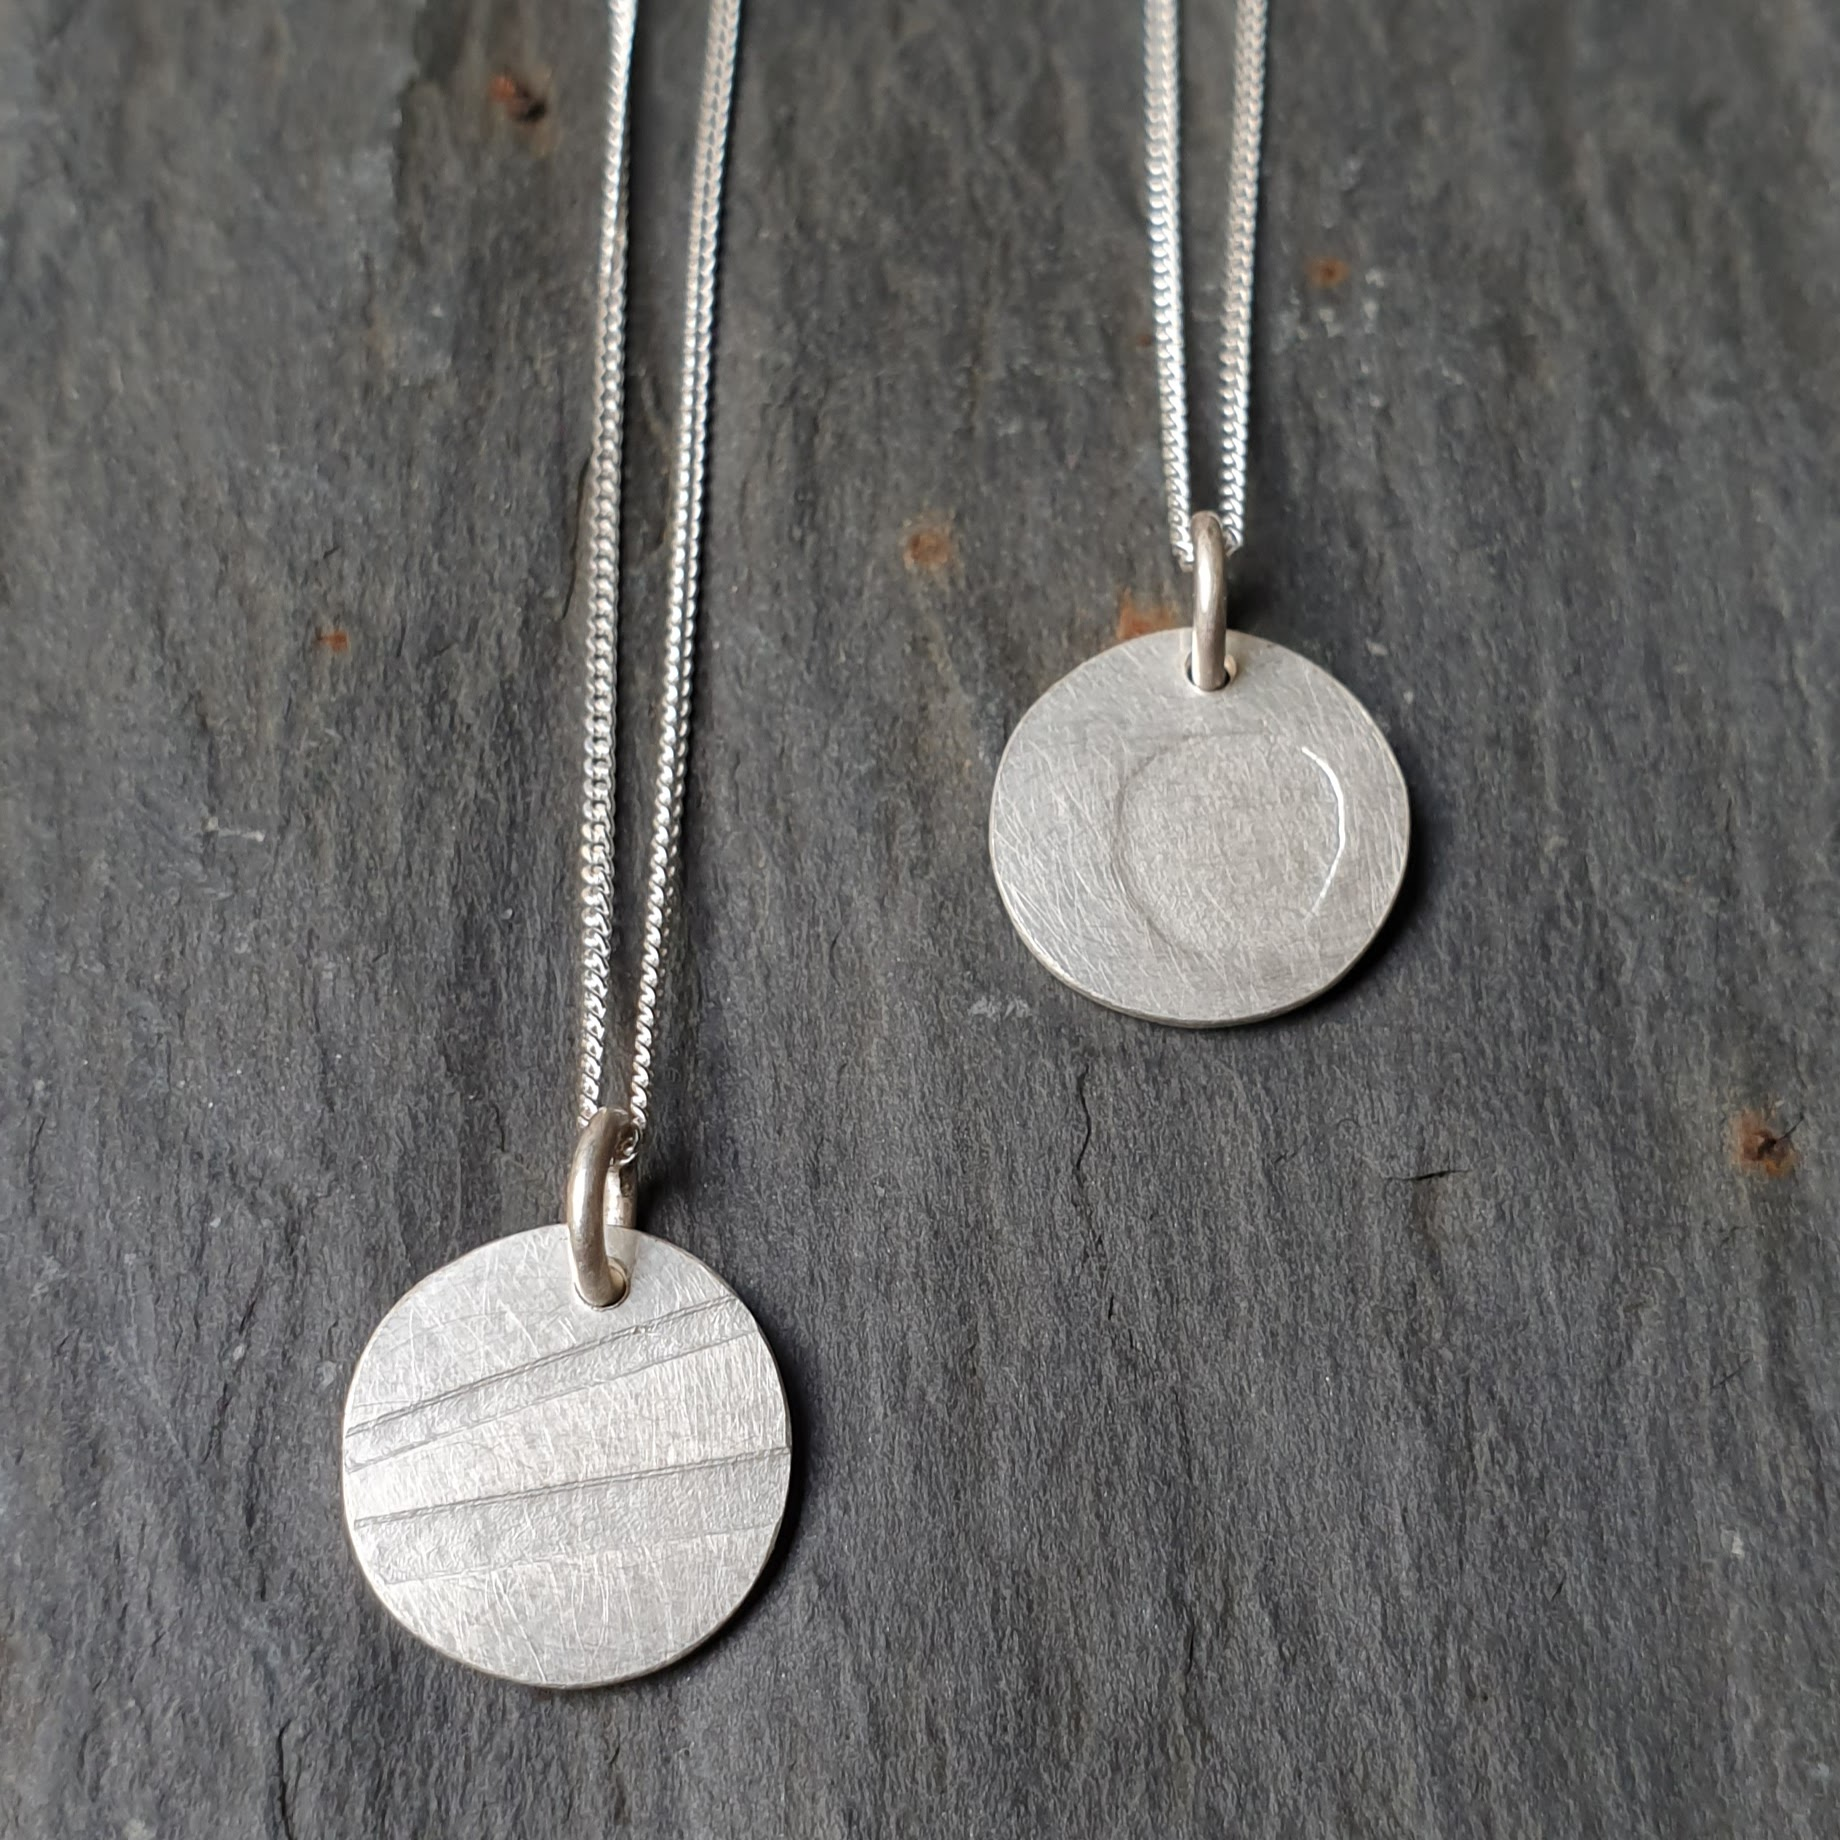 Pebble necklace by Tina MacLeod